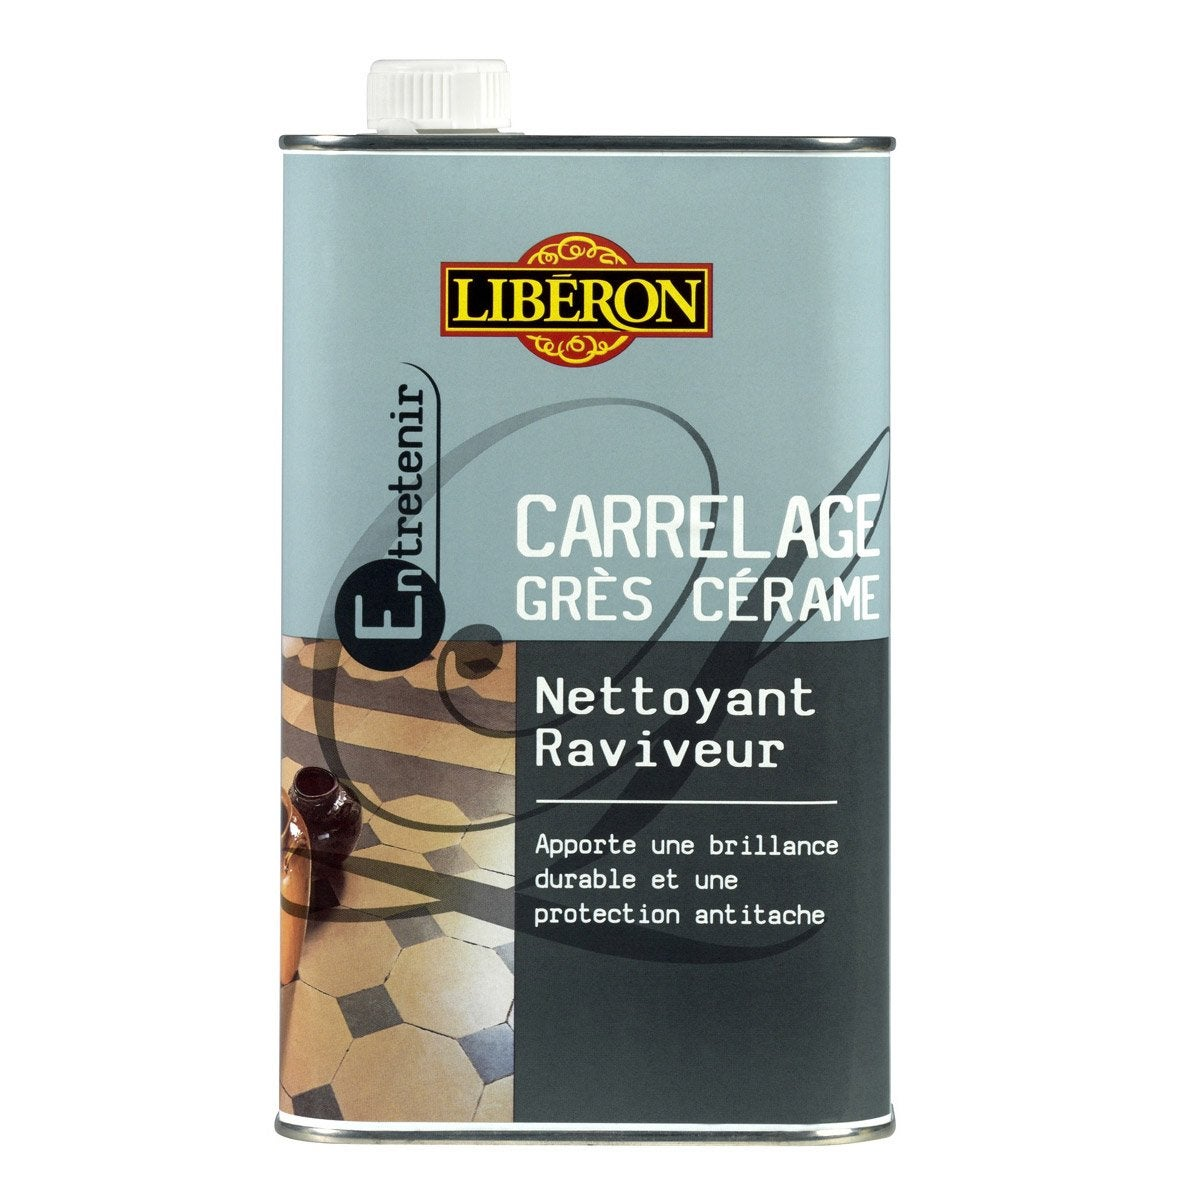 nettoyant raviveur carrelage liberon 1 l leroy merlin. Black Bedroom Furniture Sets. Home Design Ideas